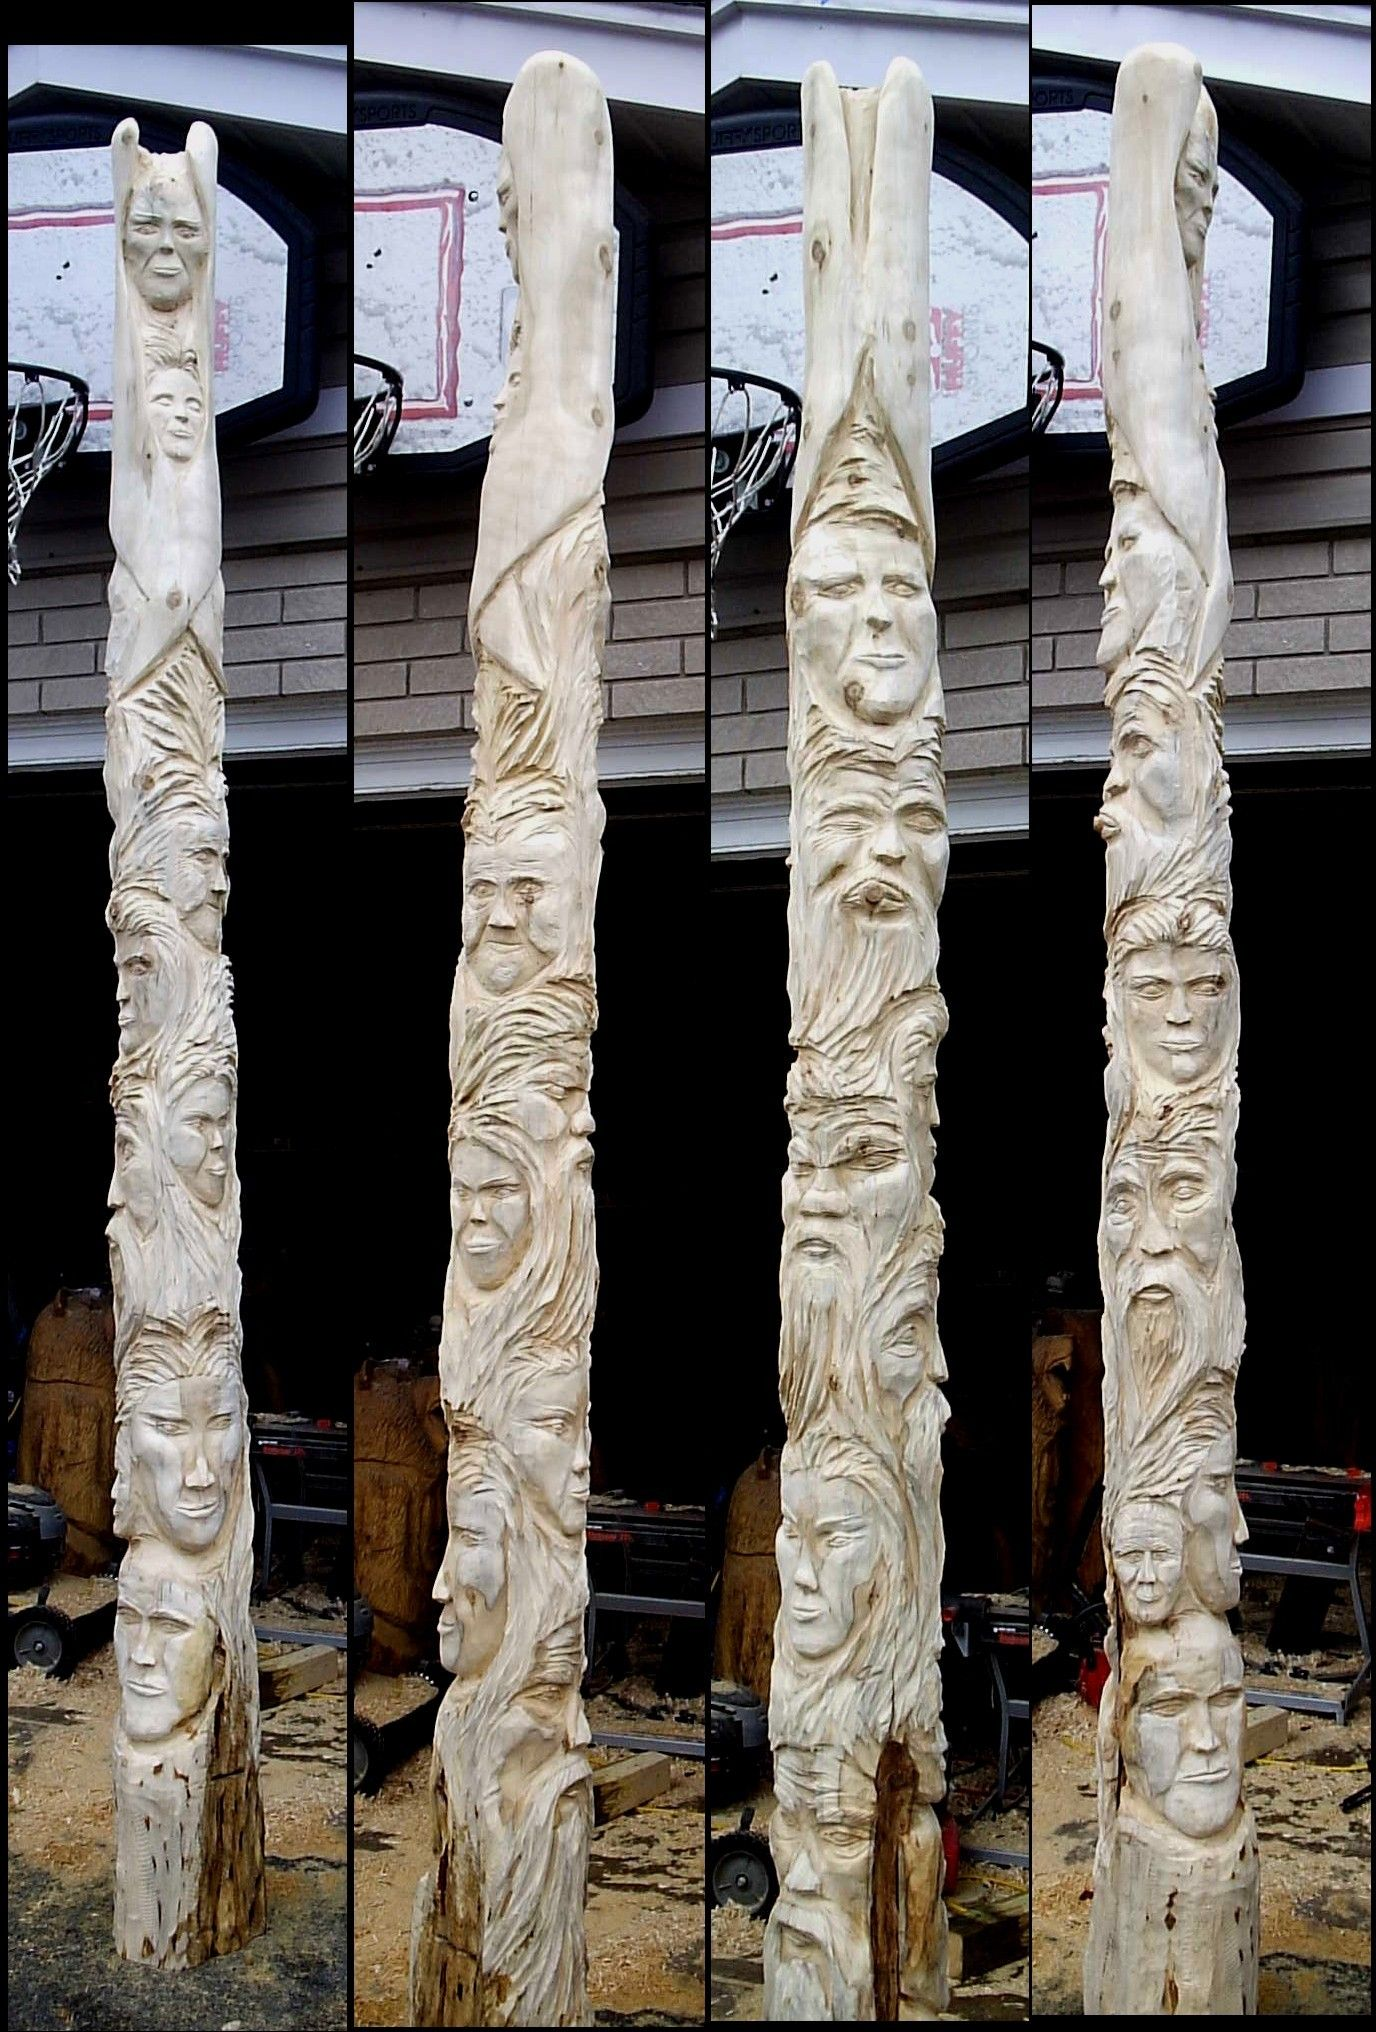 totems tell a story, these have been carved but not yet